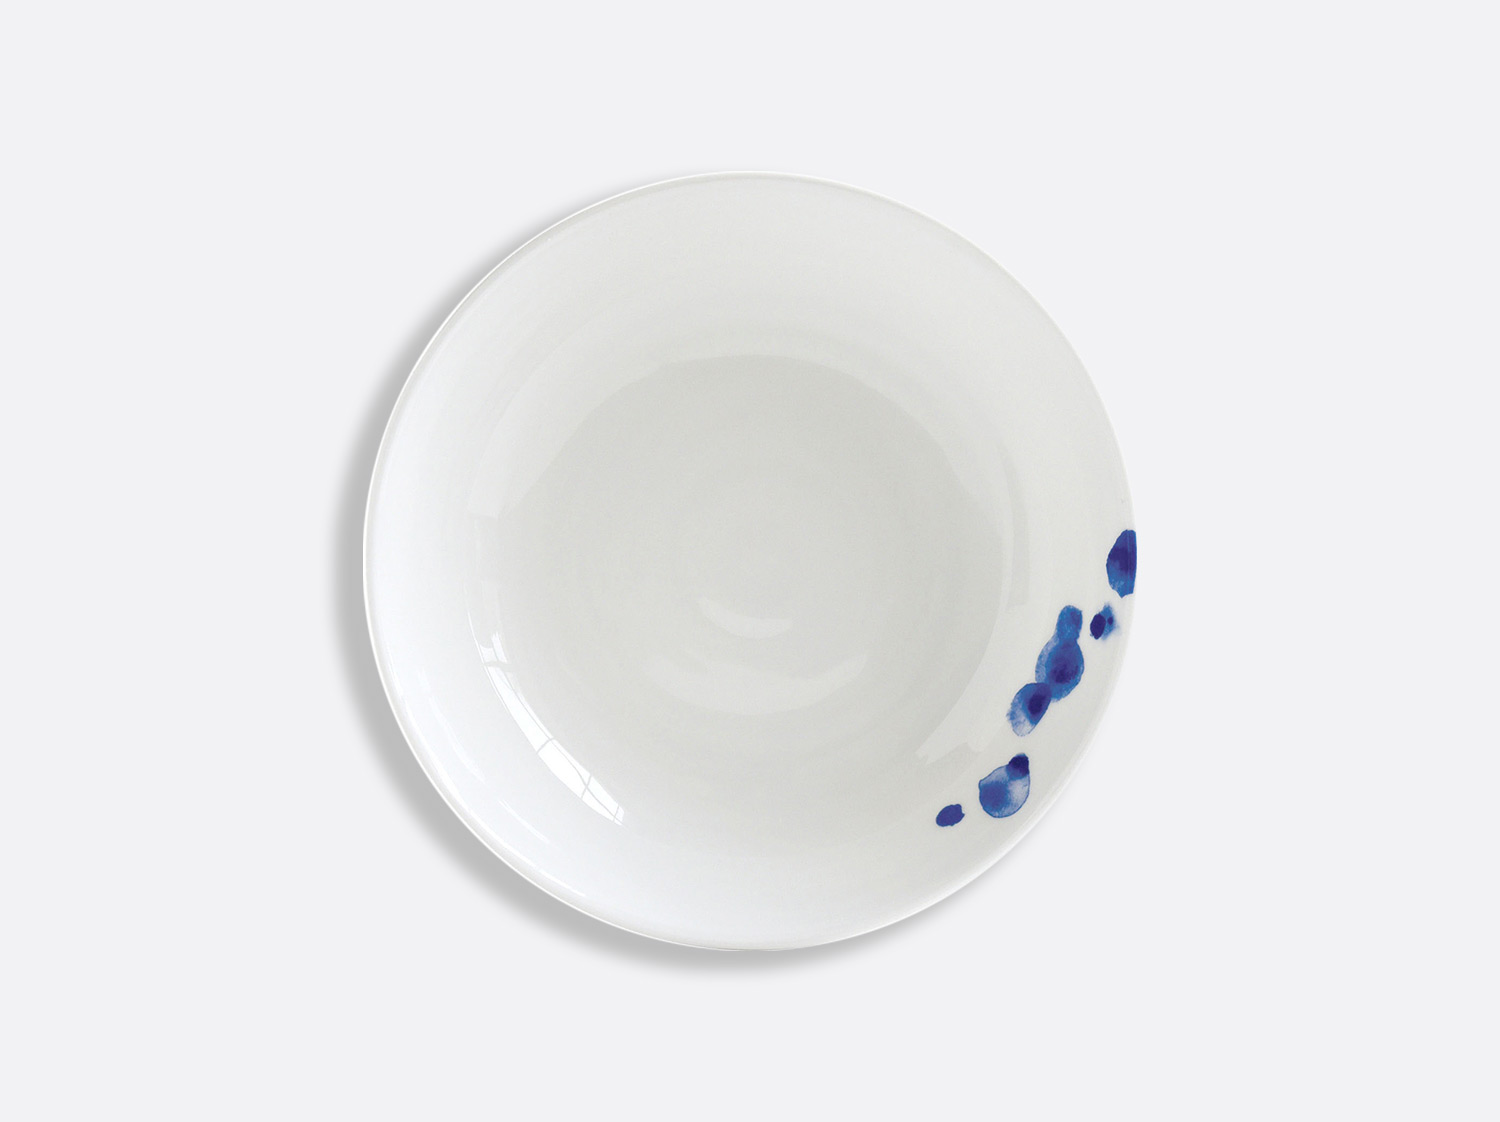 Assiette creuse calotte 19 cm en porcelaine de la collection Ondée Bernardaud